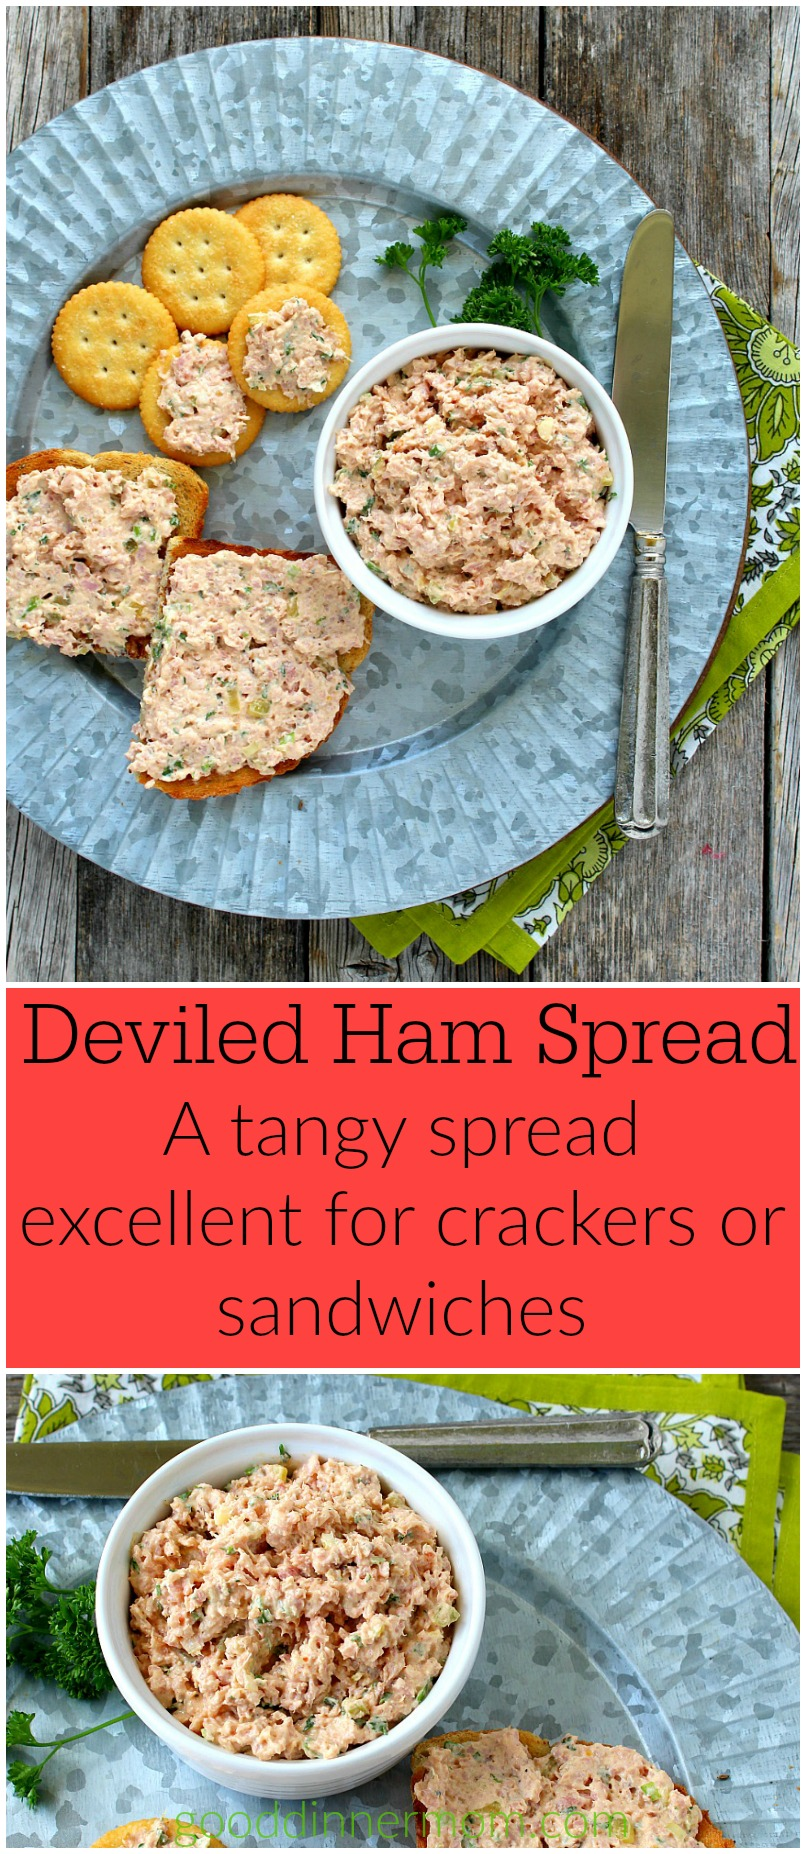 A fresh take on deviled ham. Better than anything out of a can and ready in just ten minutes.